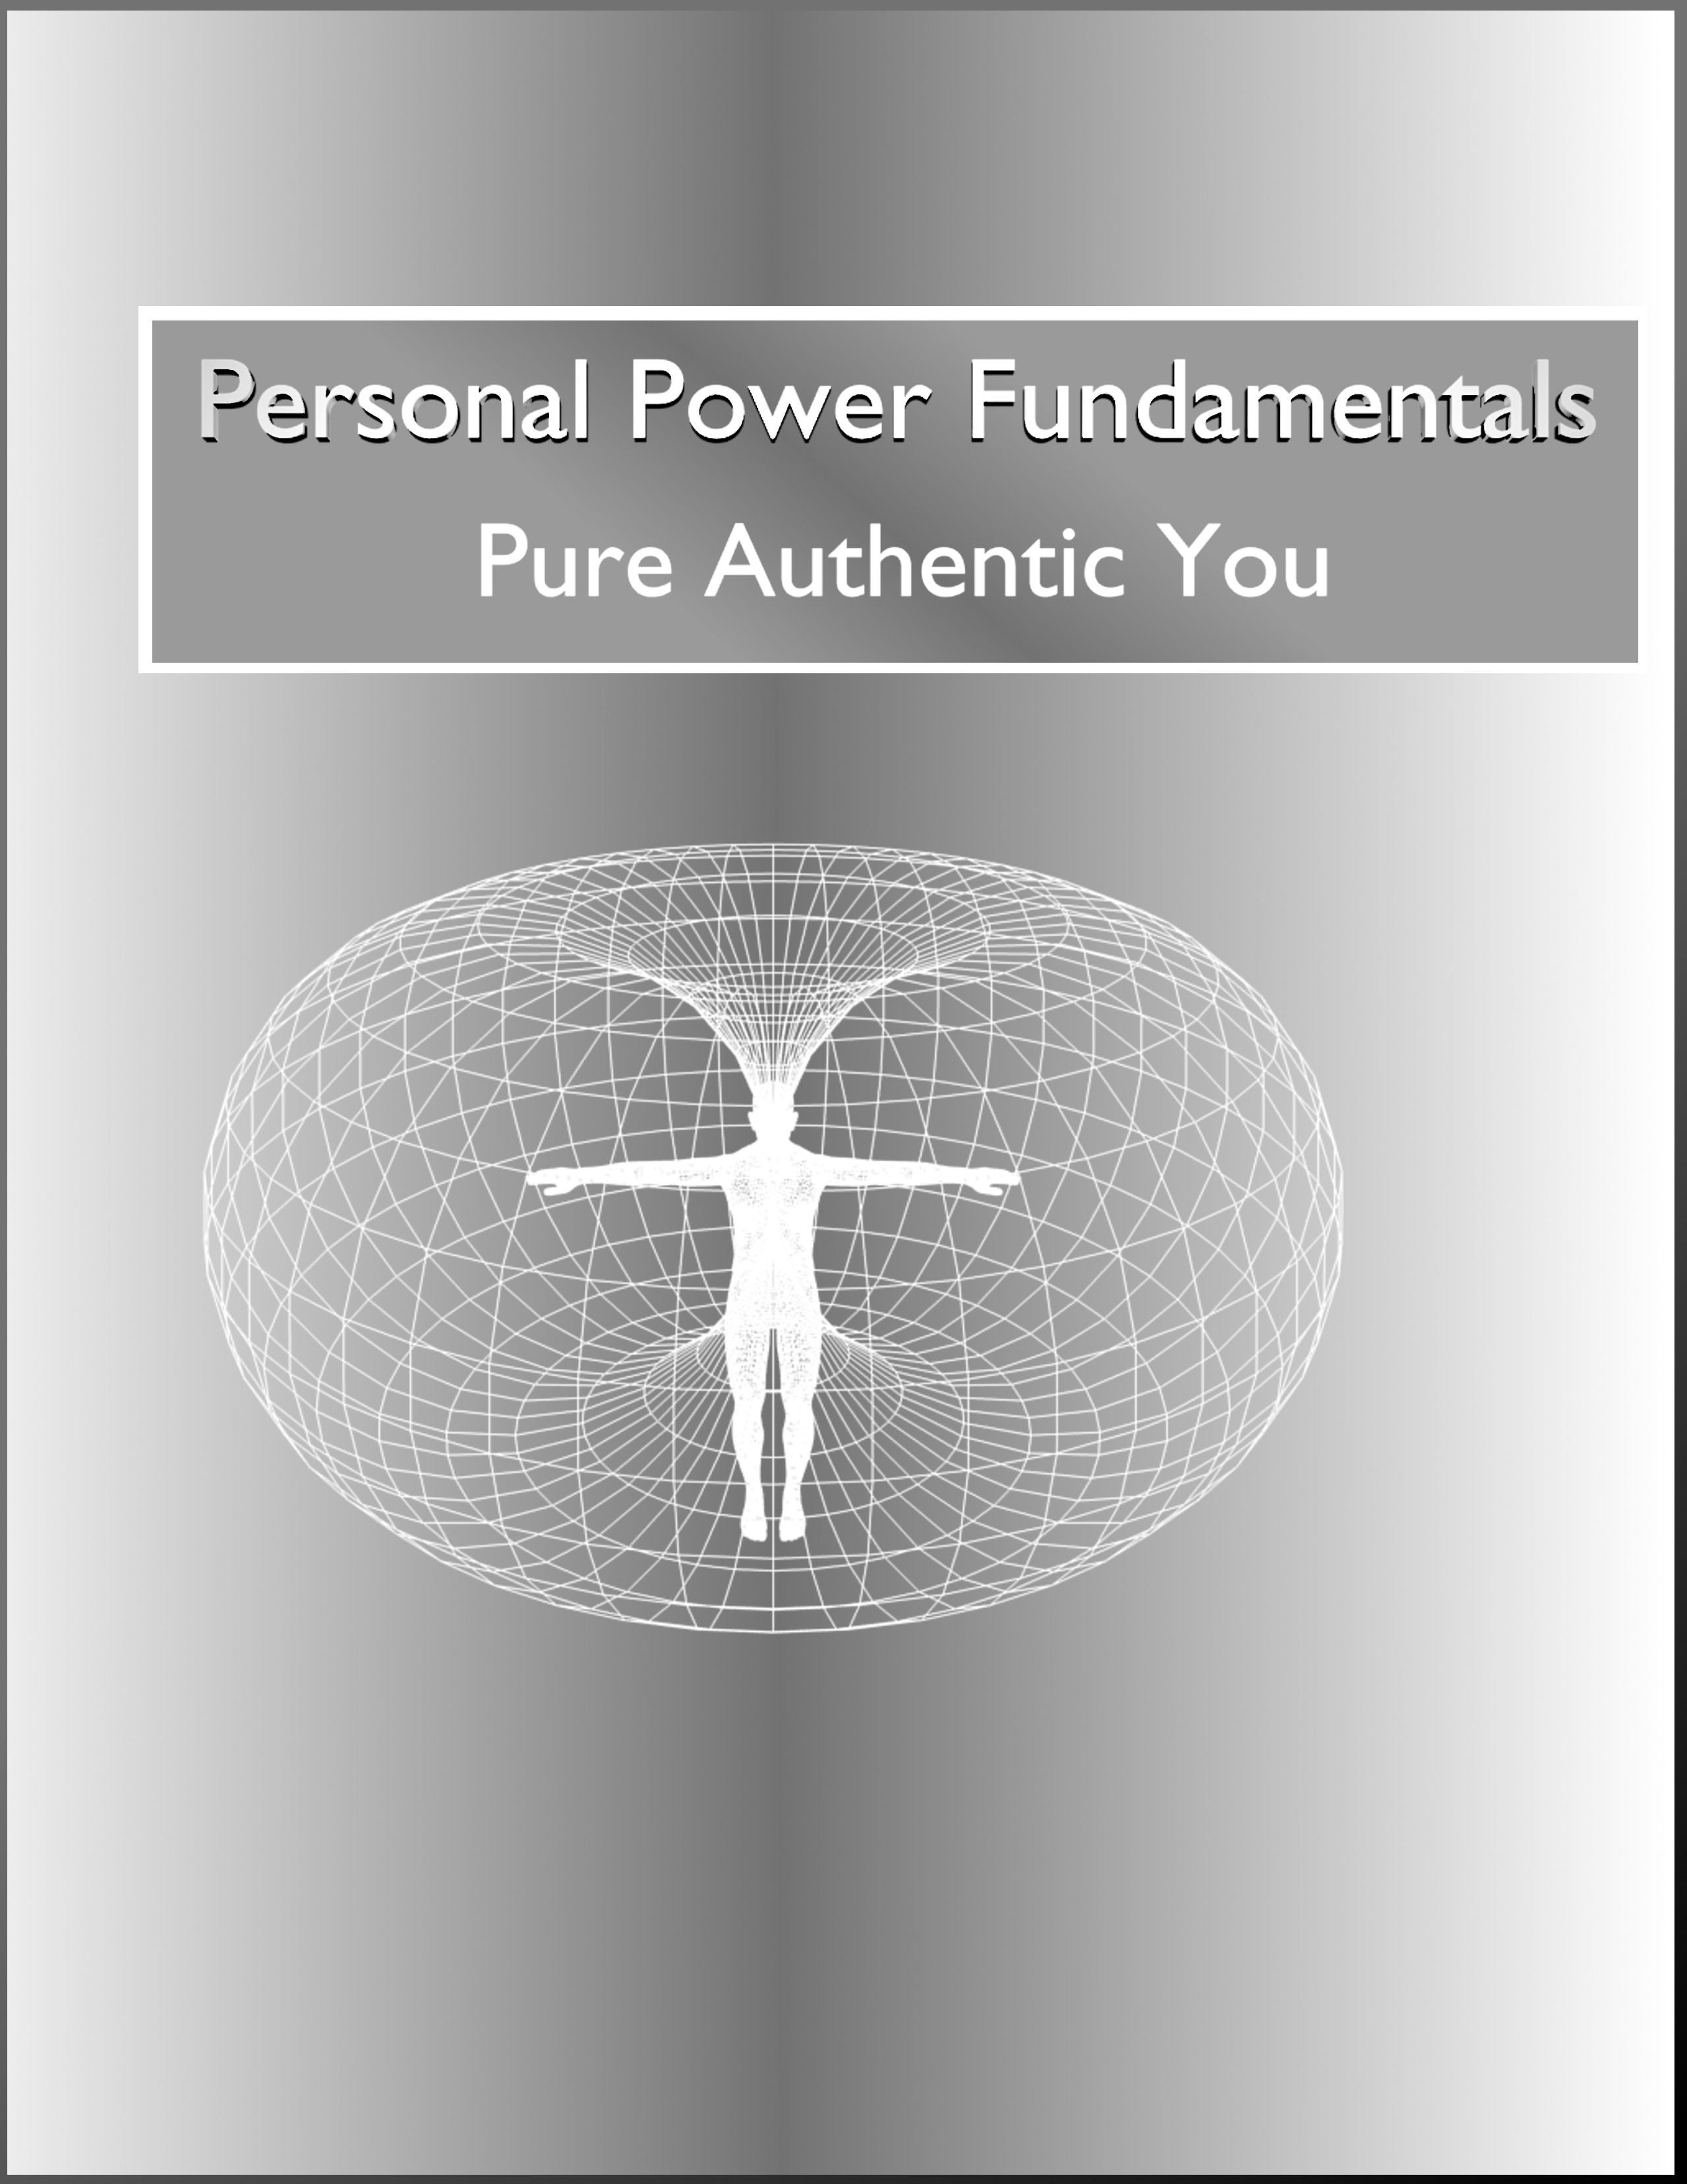 New human living soul level living the only difference between you and any sage mystic or prophet is your karma you surrender your power as you accumulate your karma fandeluxe Gallery